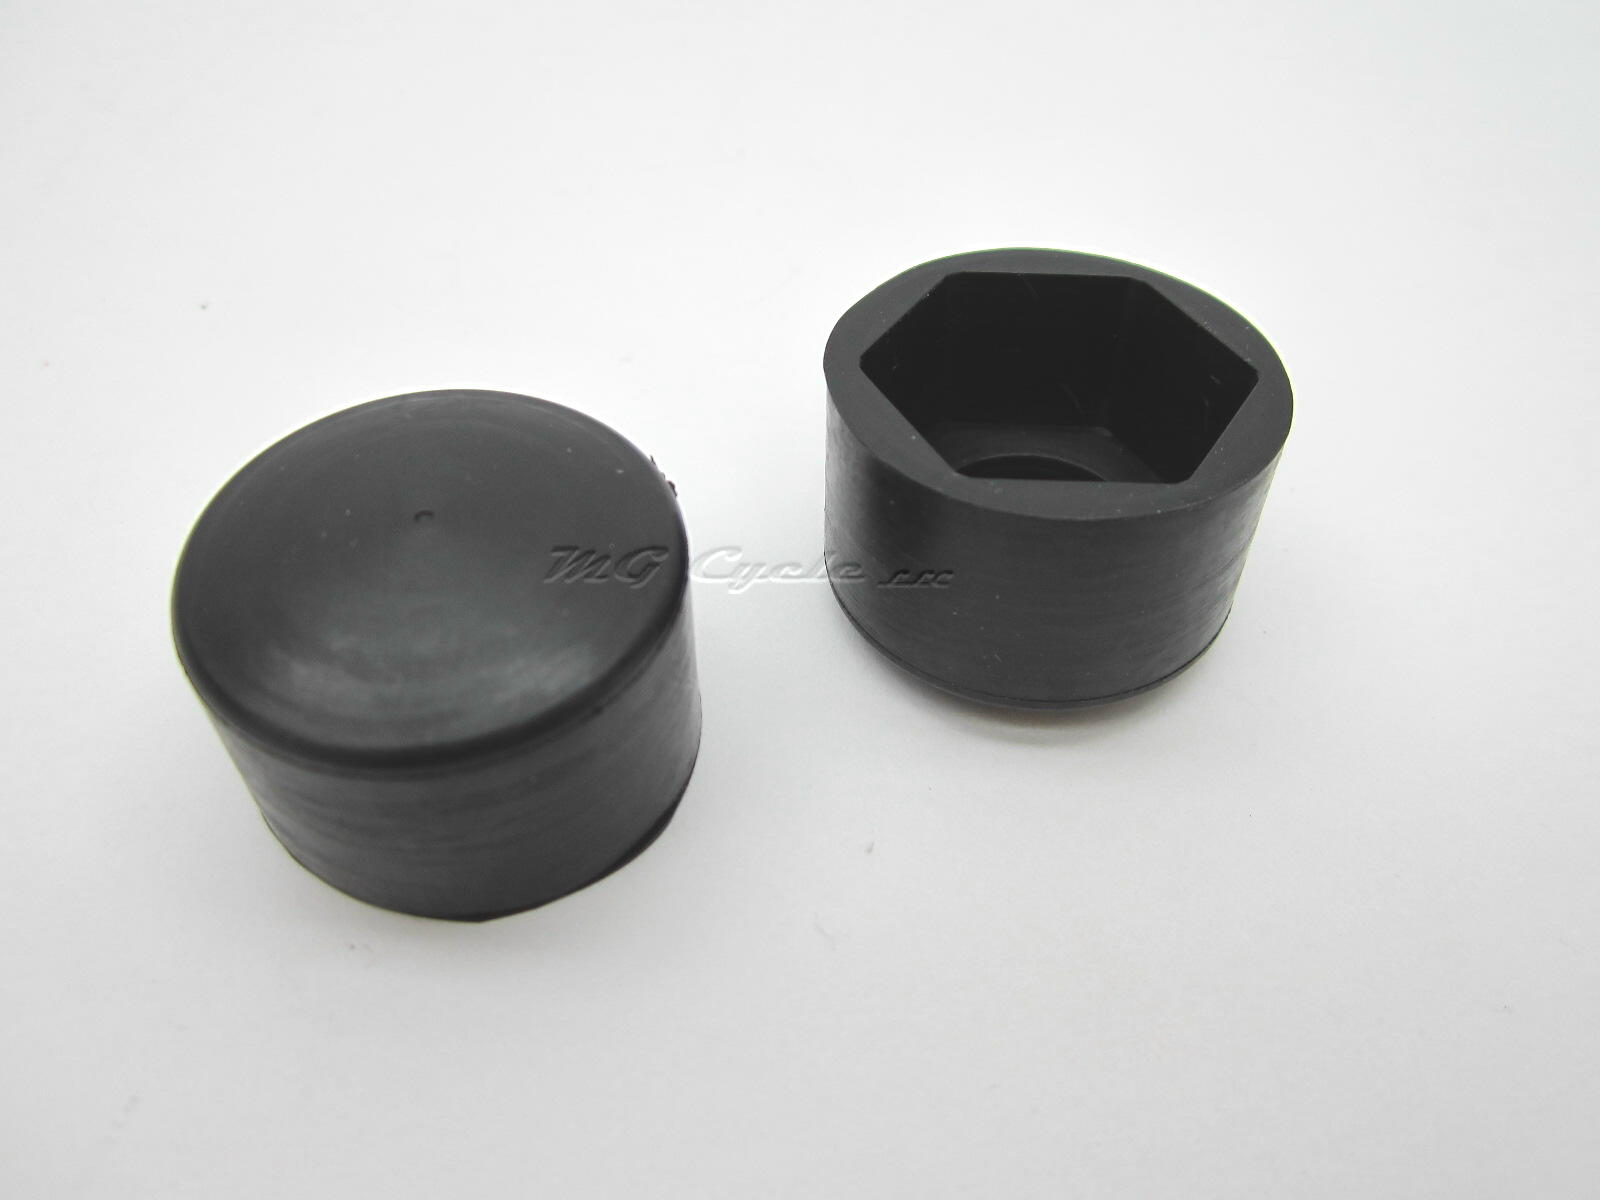 rubber cover cap for axle nut